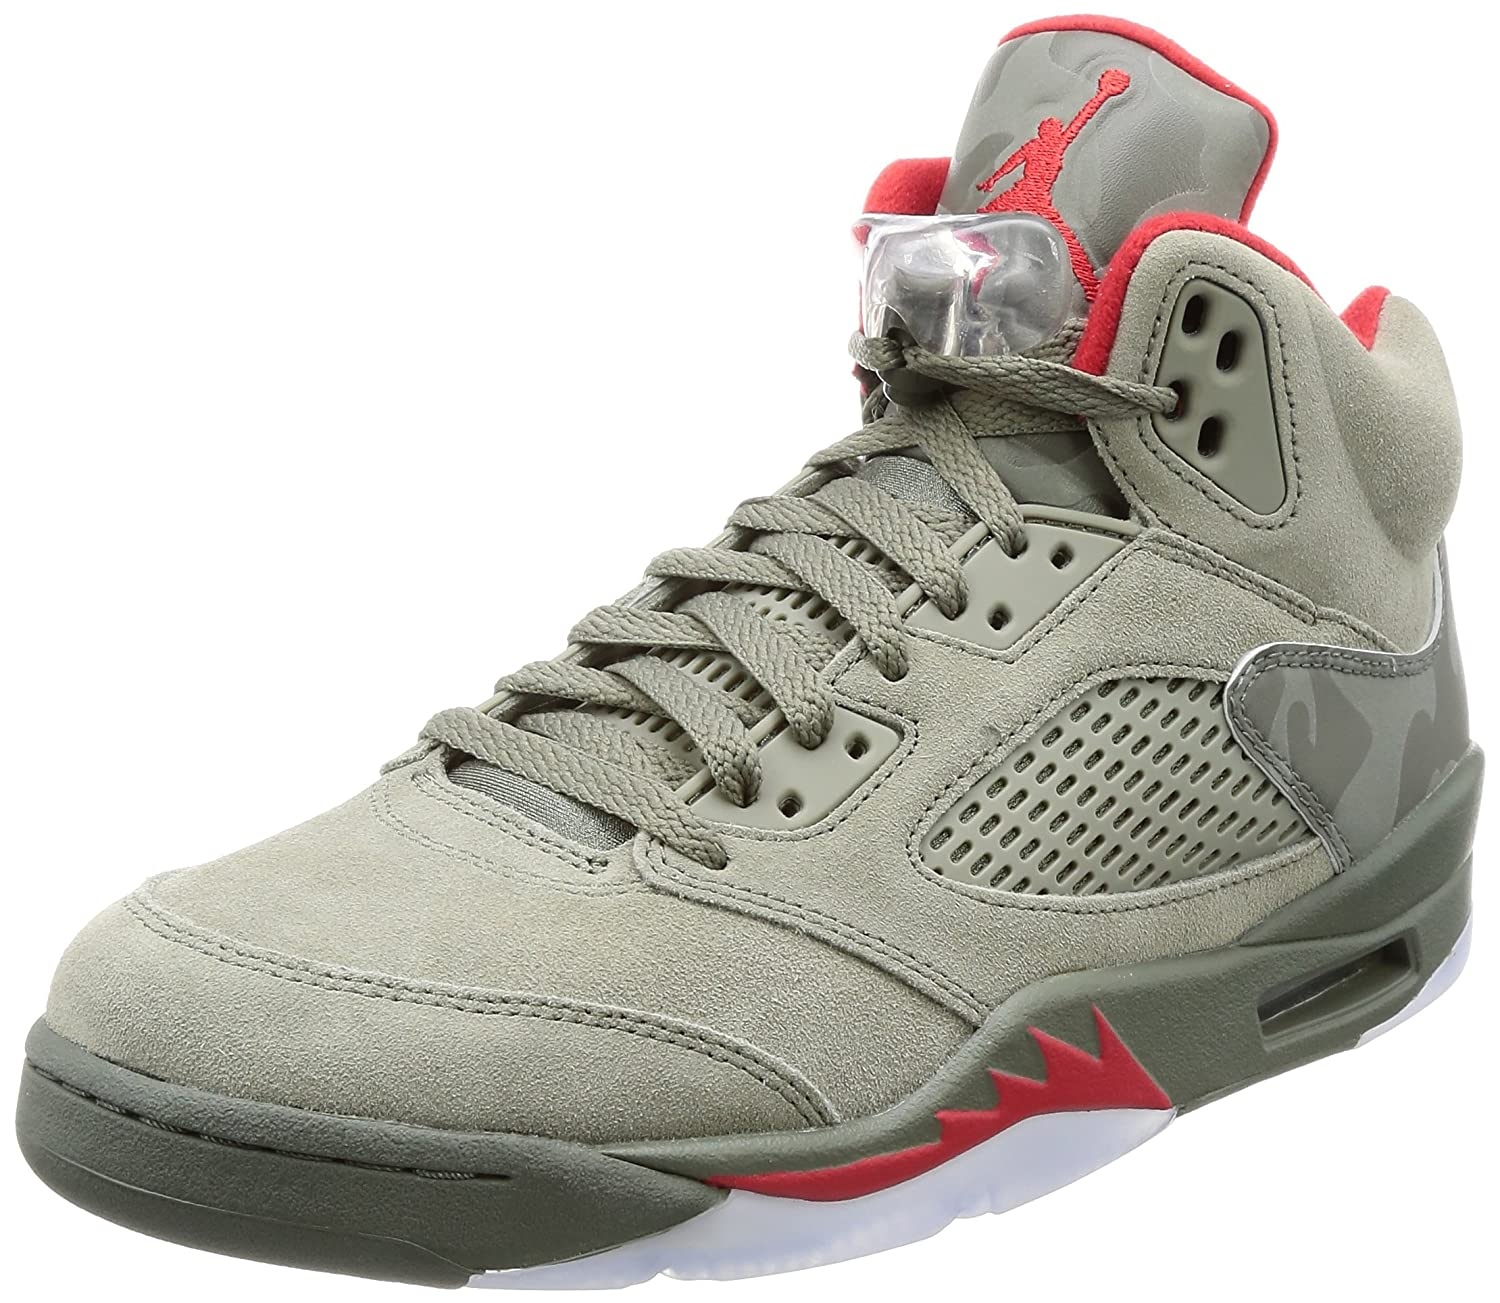 new style f7158 97e67 Air Jordan 5 Retro